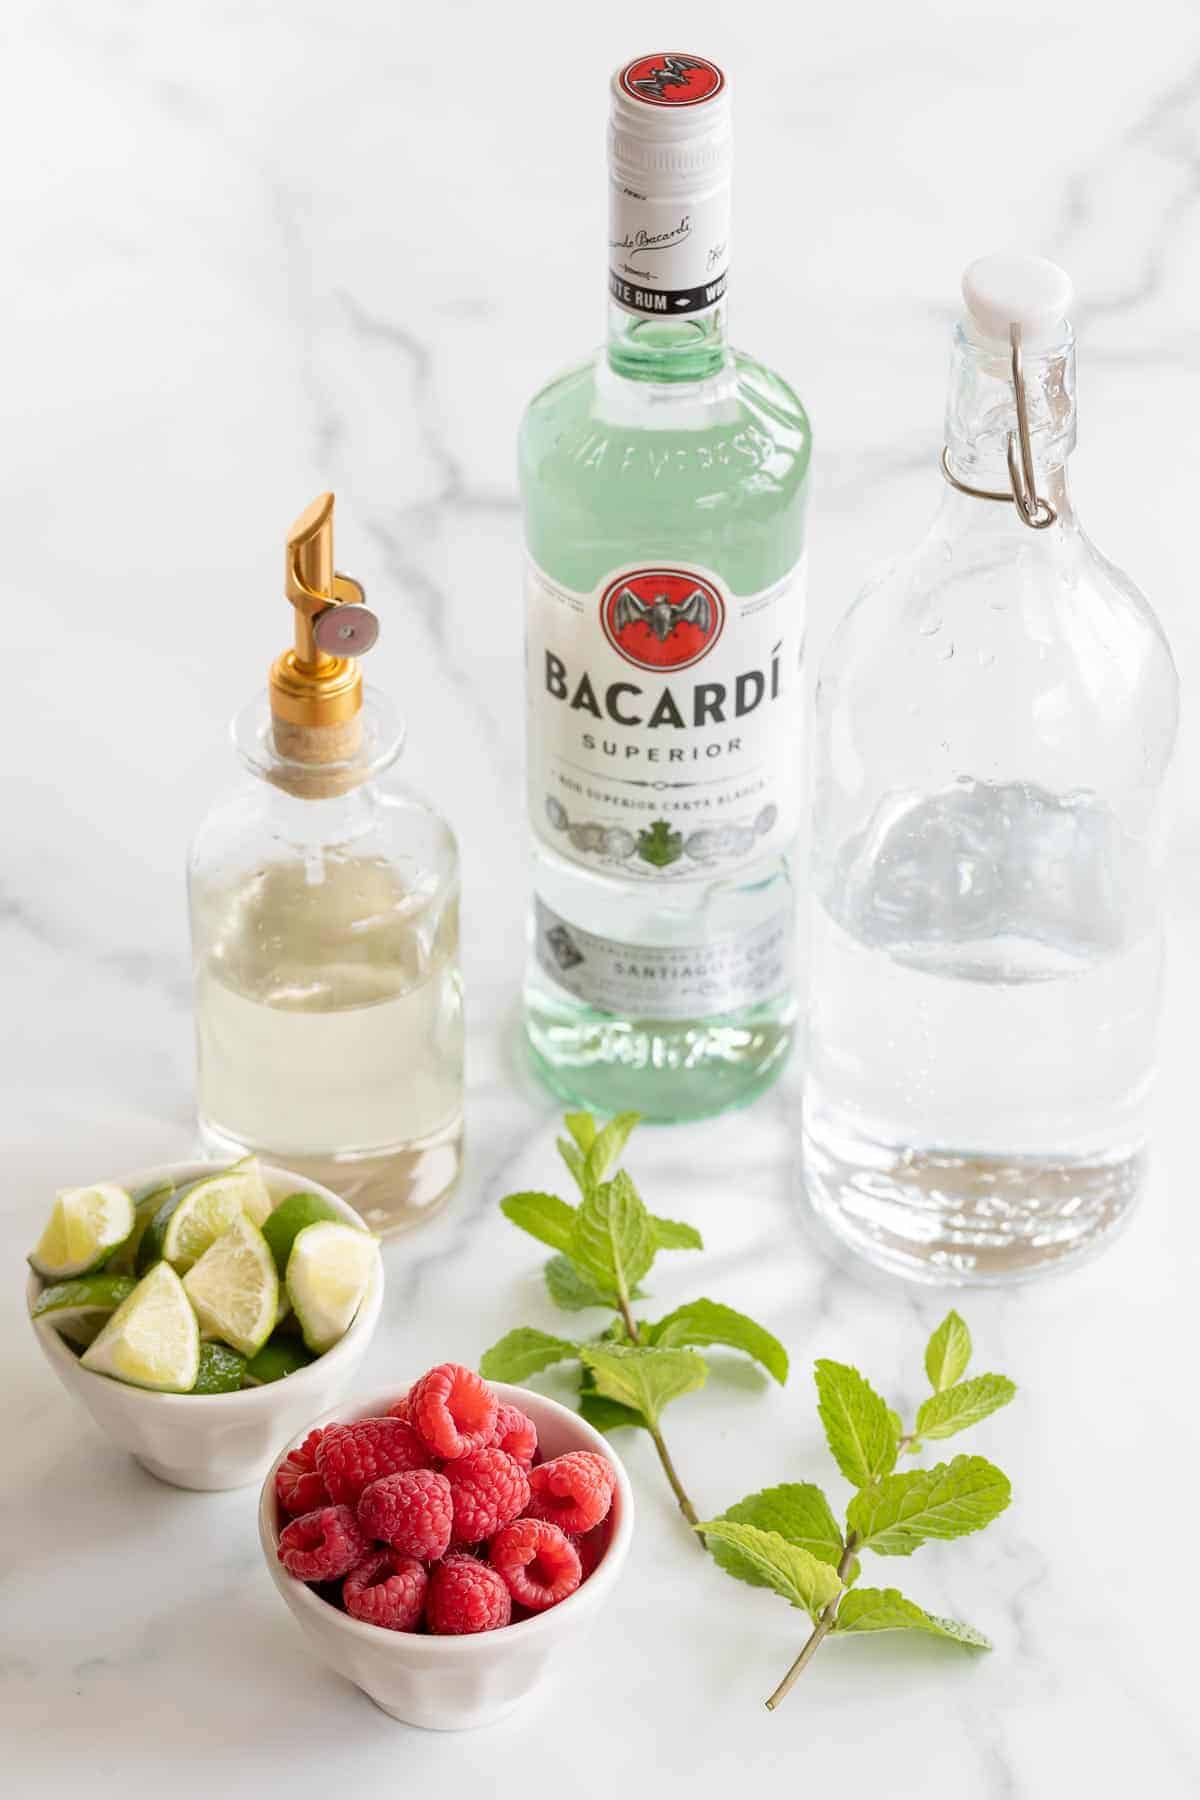 raspberry mojito ingredients displayed on marble surface